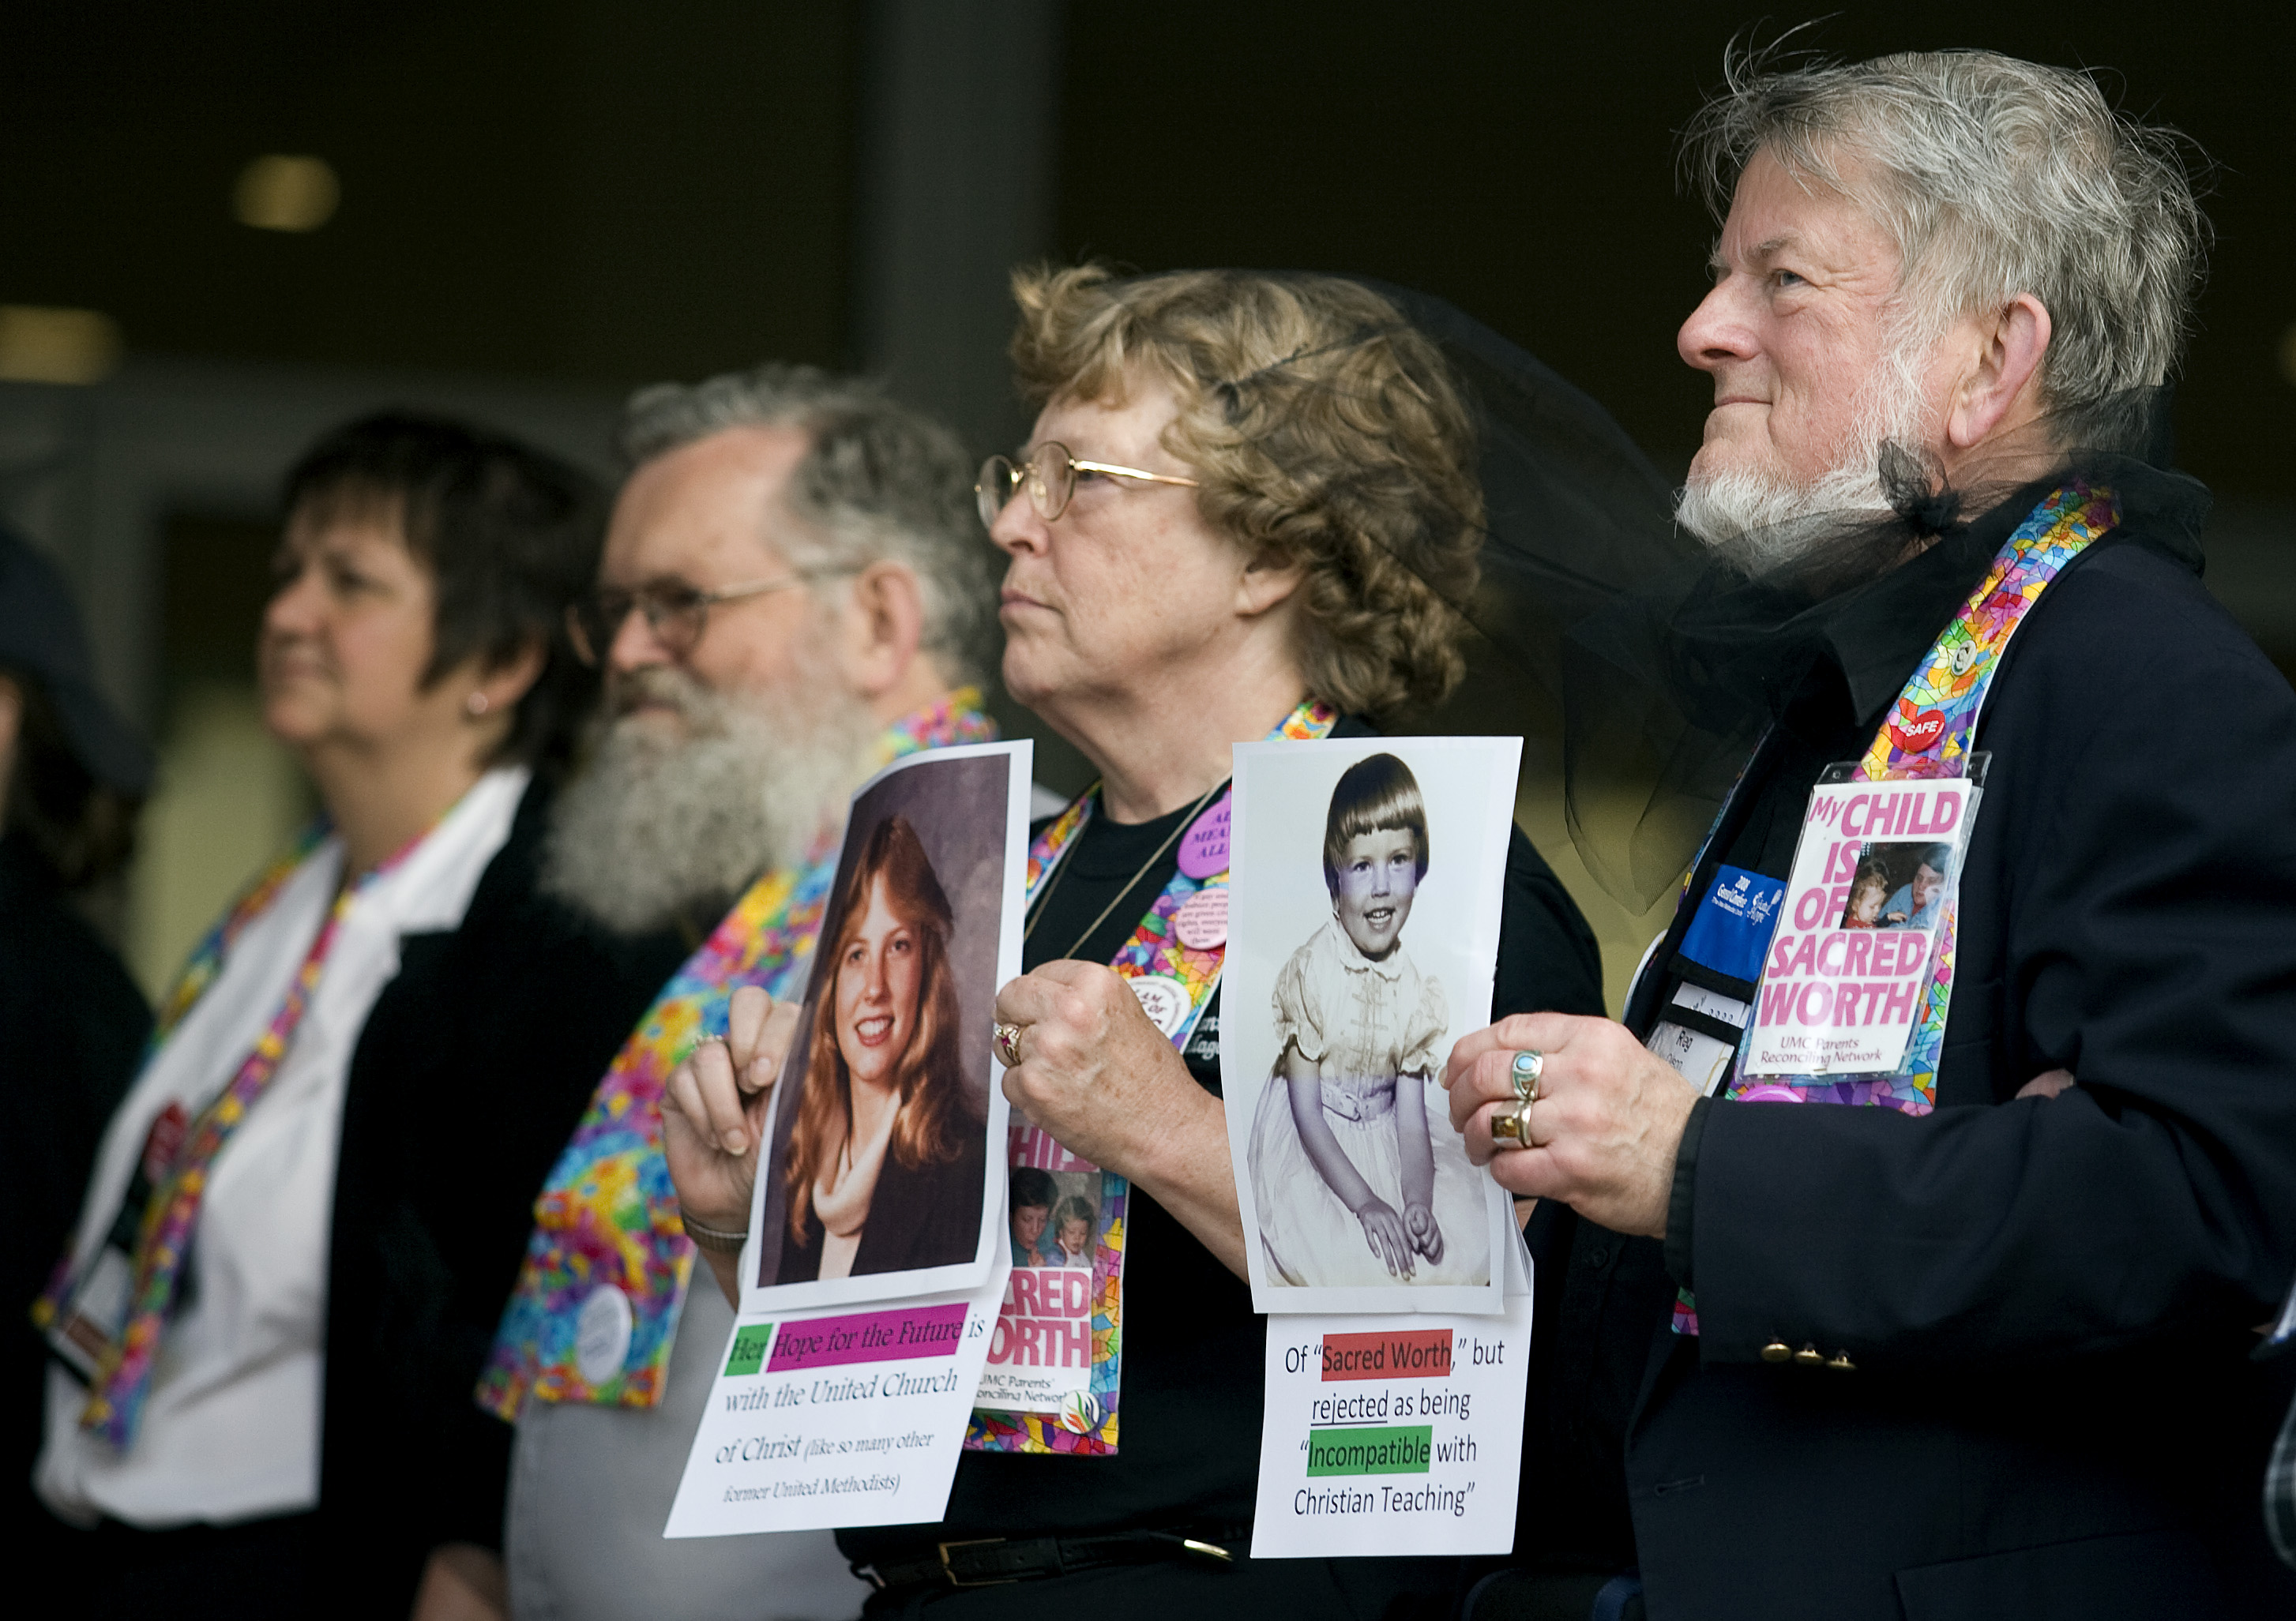 Supporters of gay rights protest church rulings during the 2008 United Methodist General Conference. A UMNS file photo by Mike DuBose.